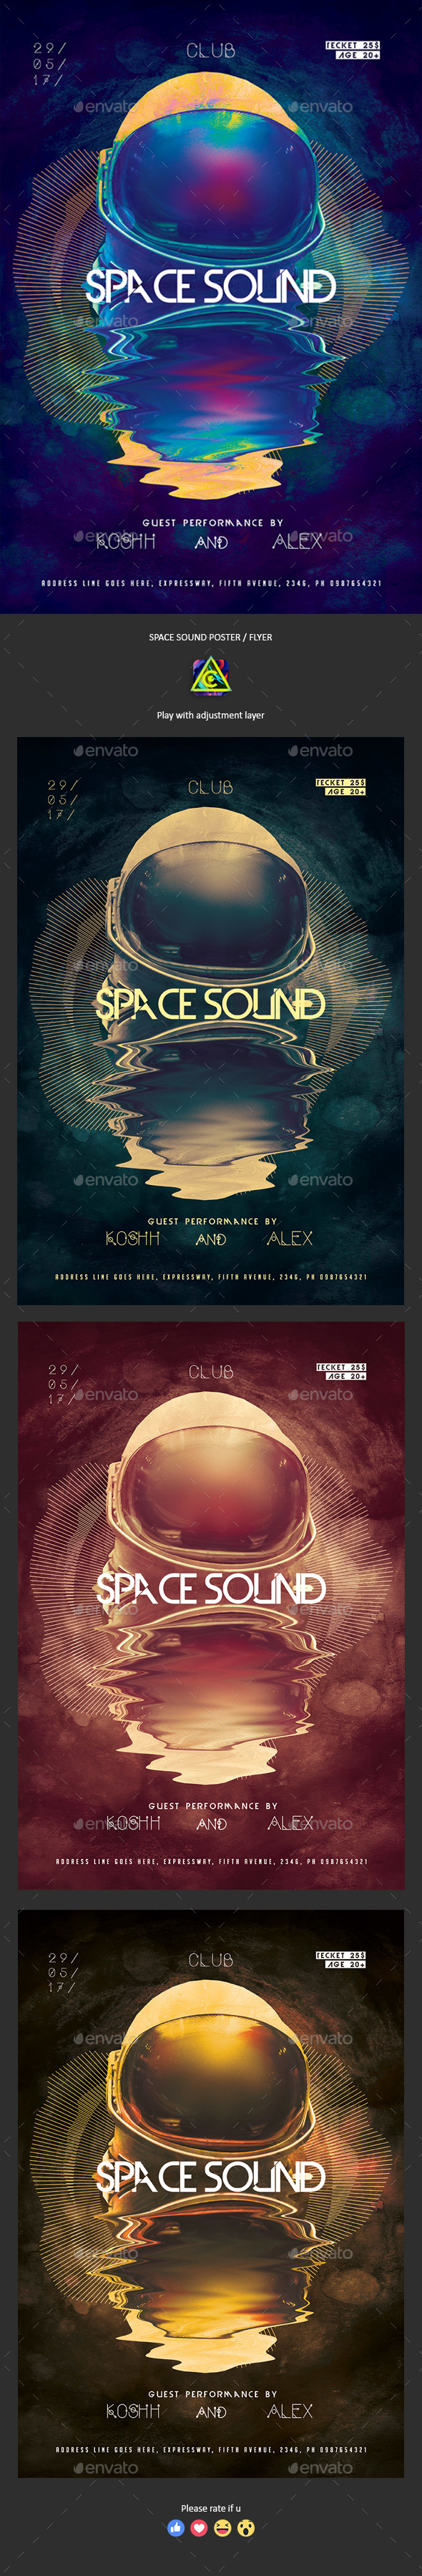 Space Sound Poster / Flyer - Clubs & Parties Events